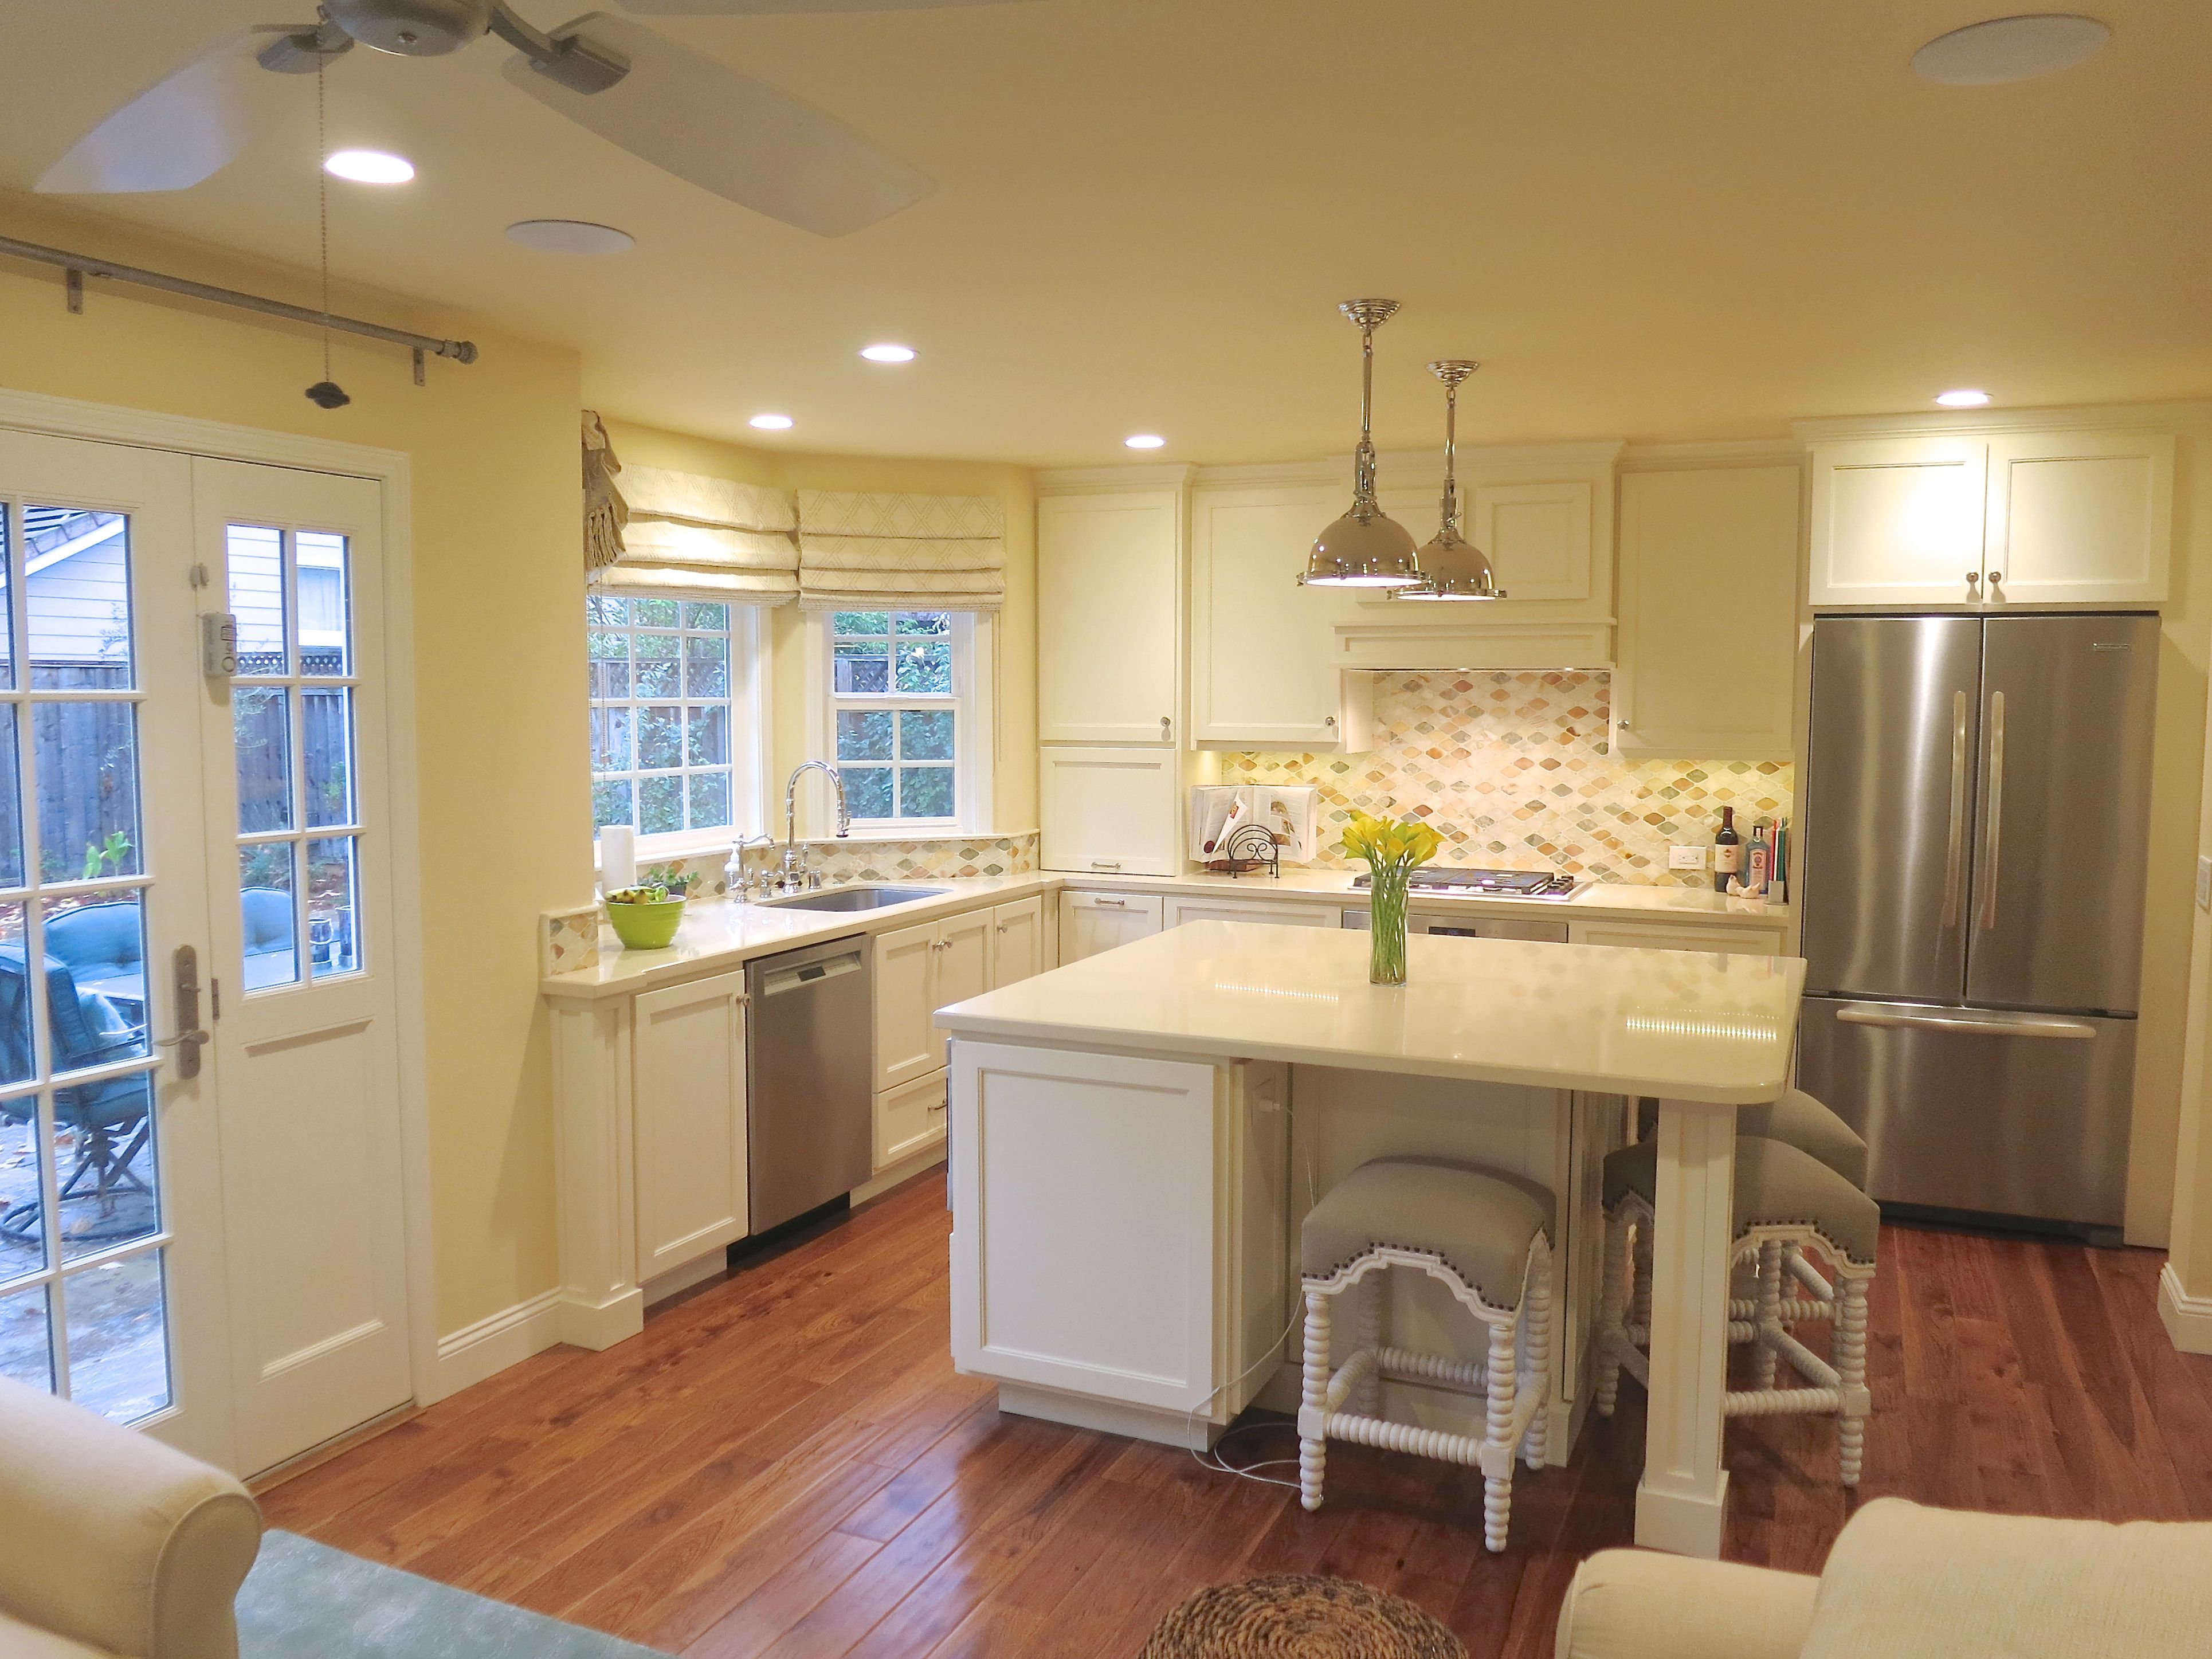 Kitchen Remodel San Jose Interior Enchanting San Jose Kitchen Remodeldesignedkatelyn Gilmour At Case . Inspiration Design